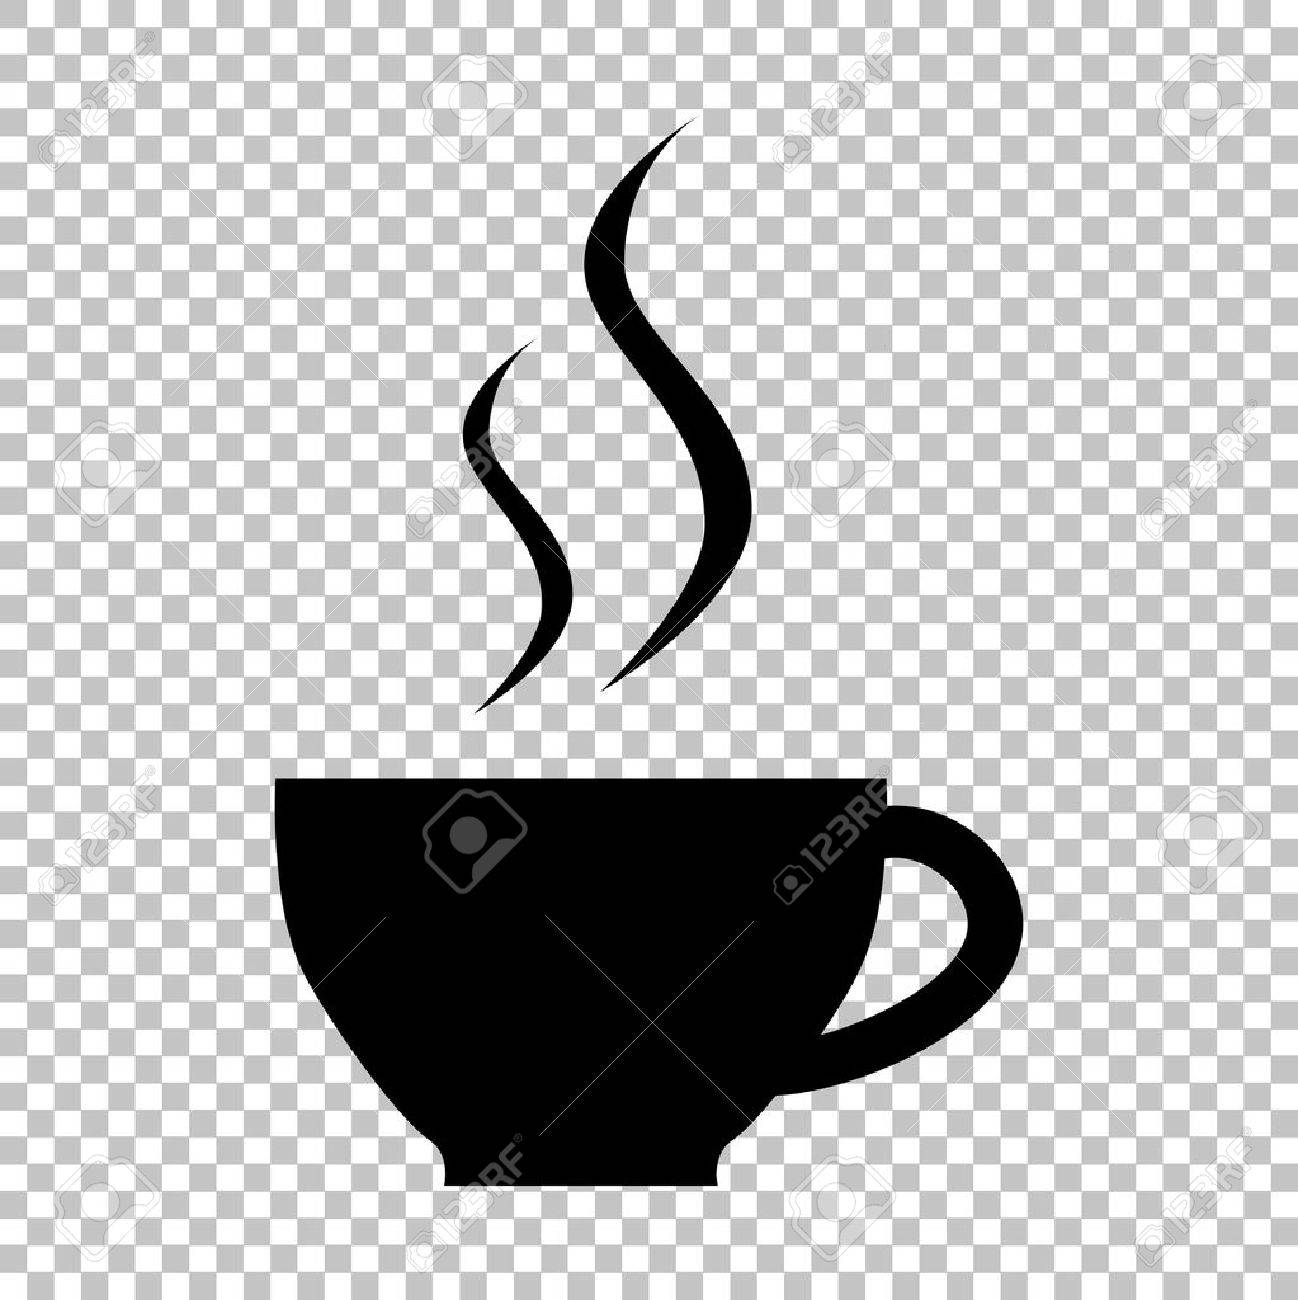 cup of coffee sign flat style icon on transparent background